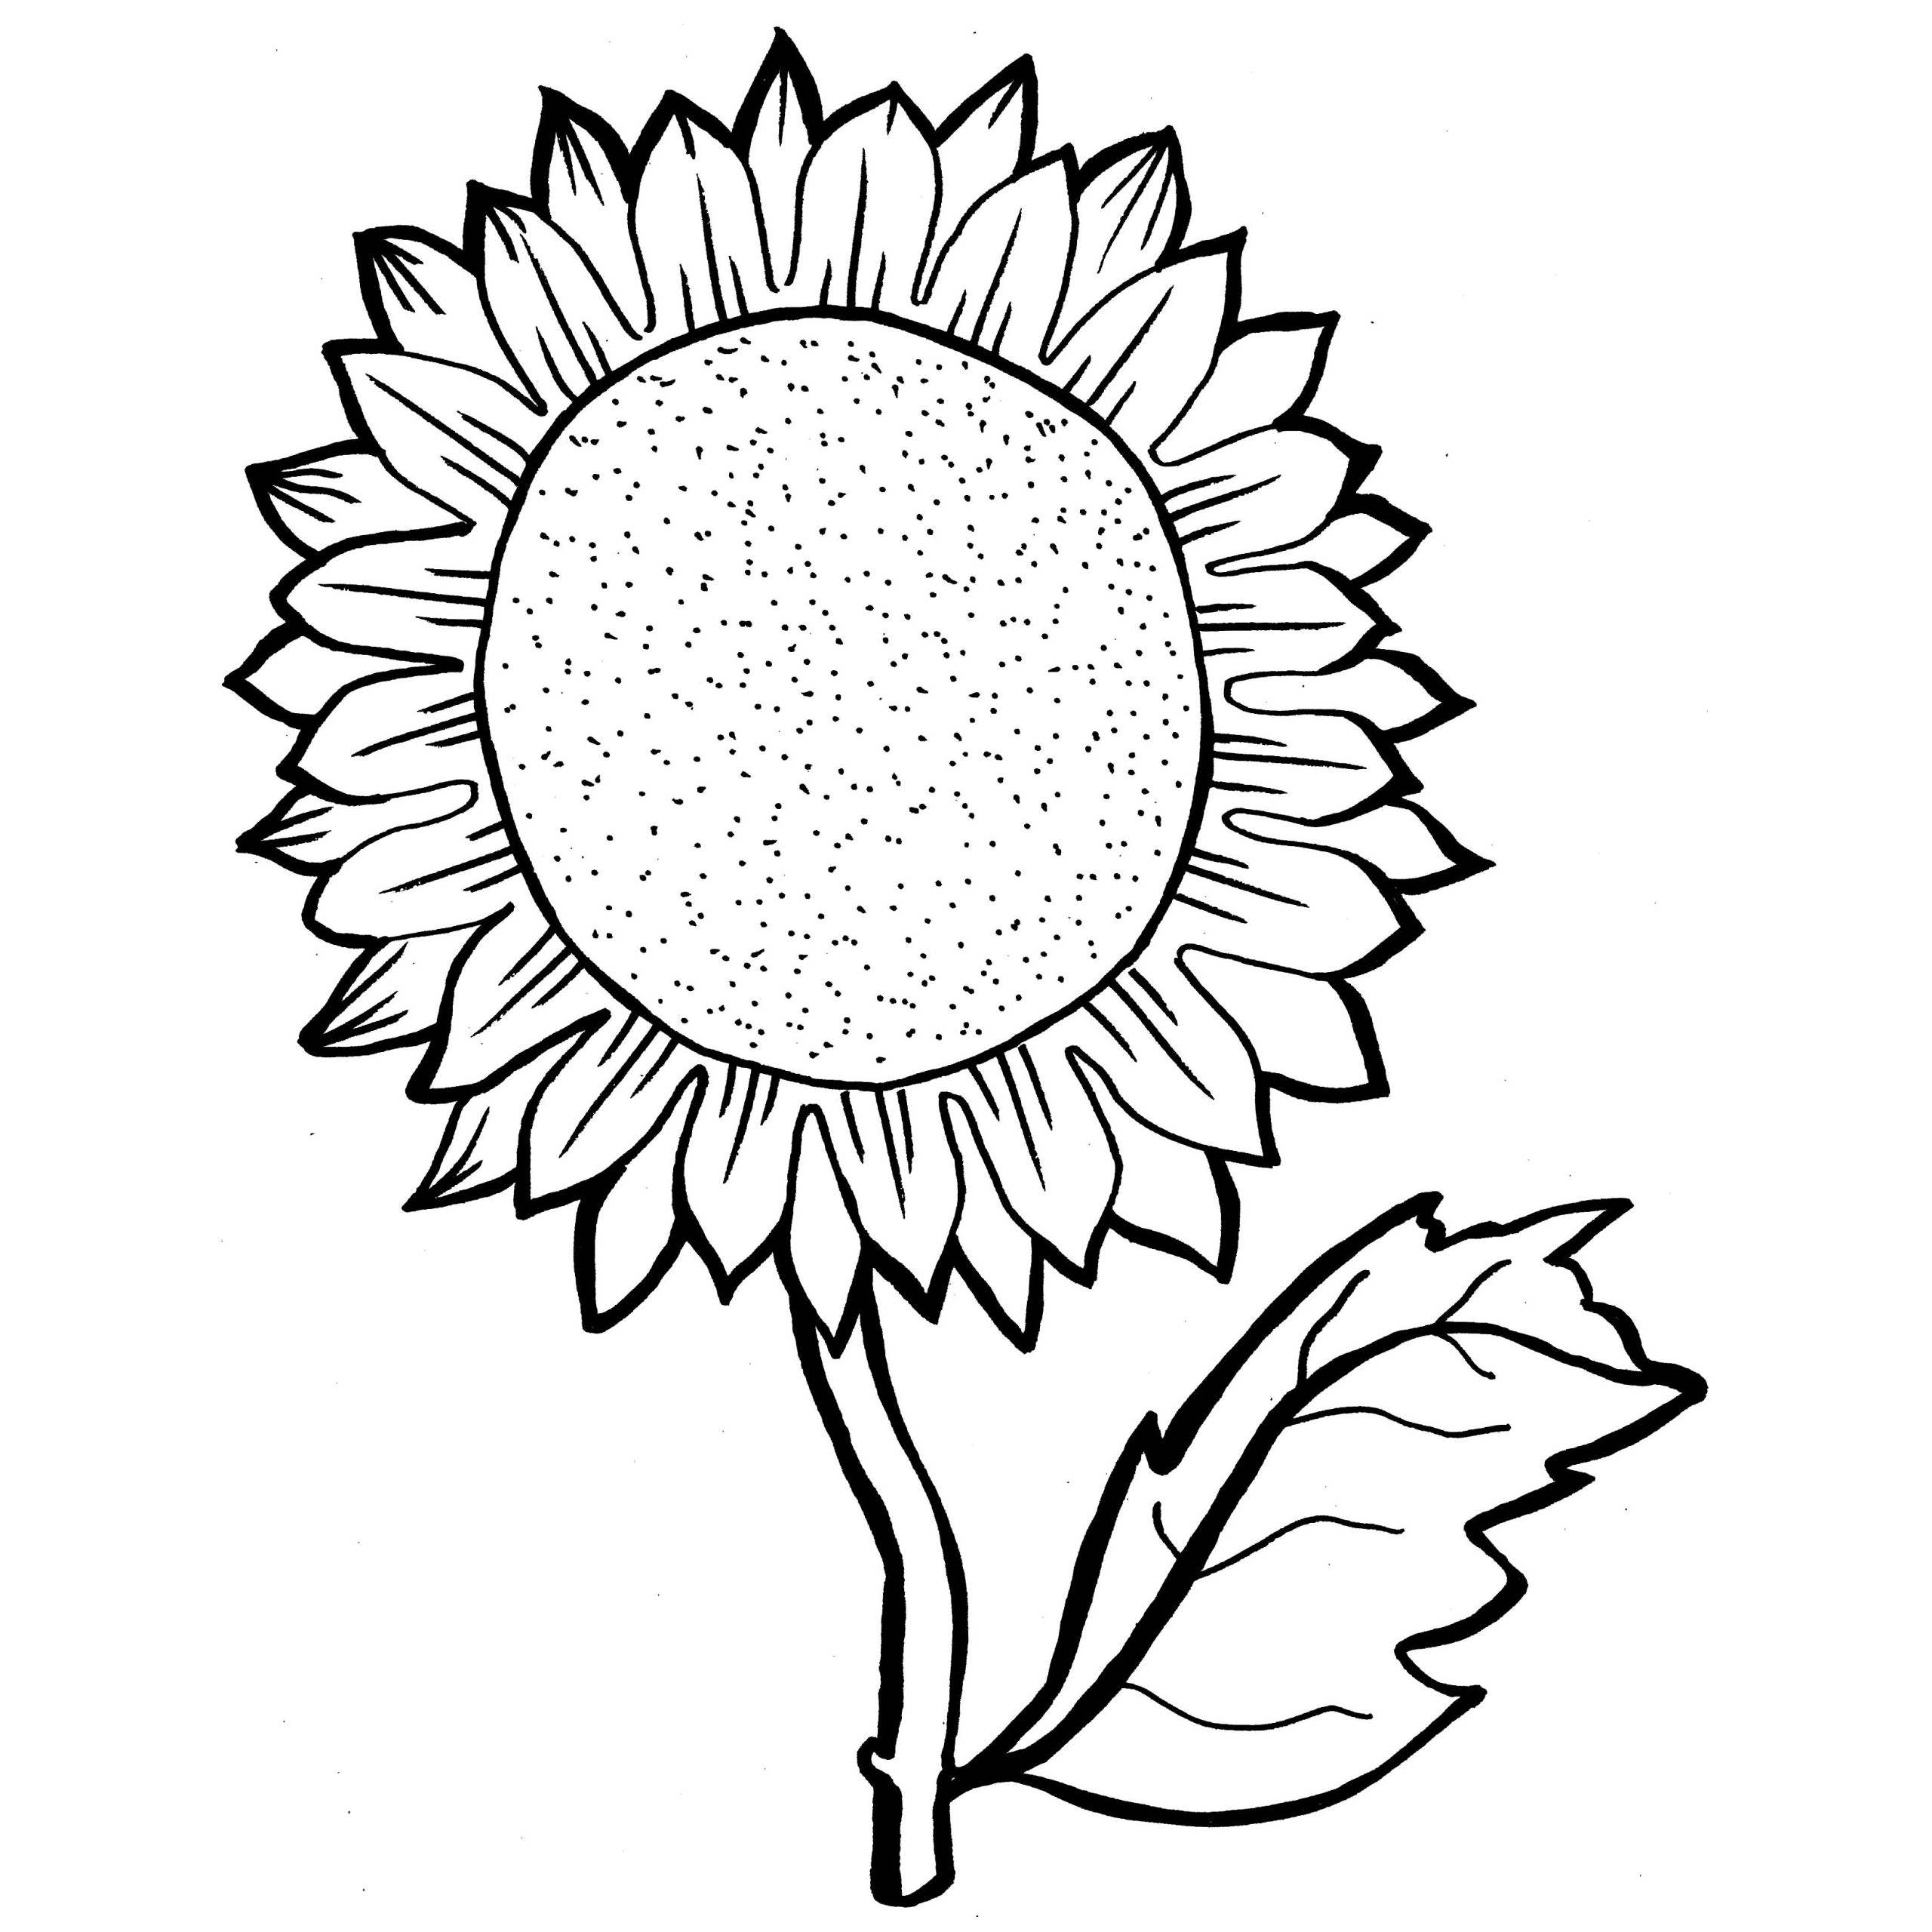 sunflower coloring sunflower coloring page at getdrawings free download sunflower coloring